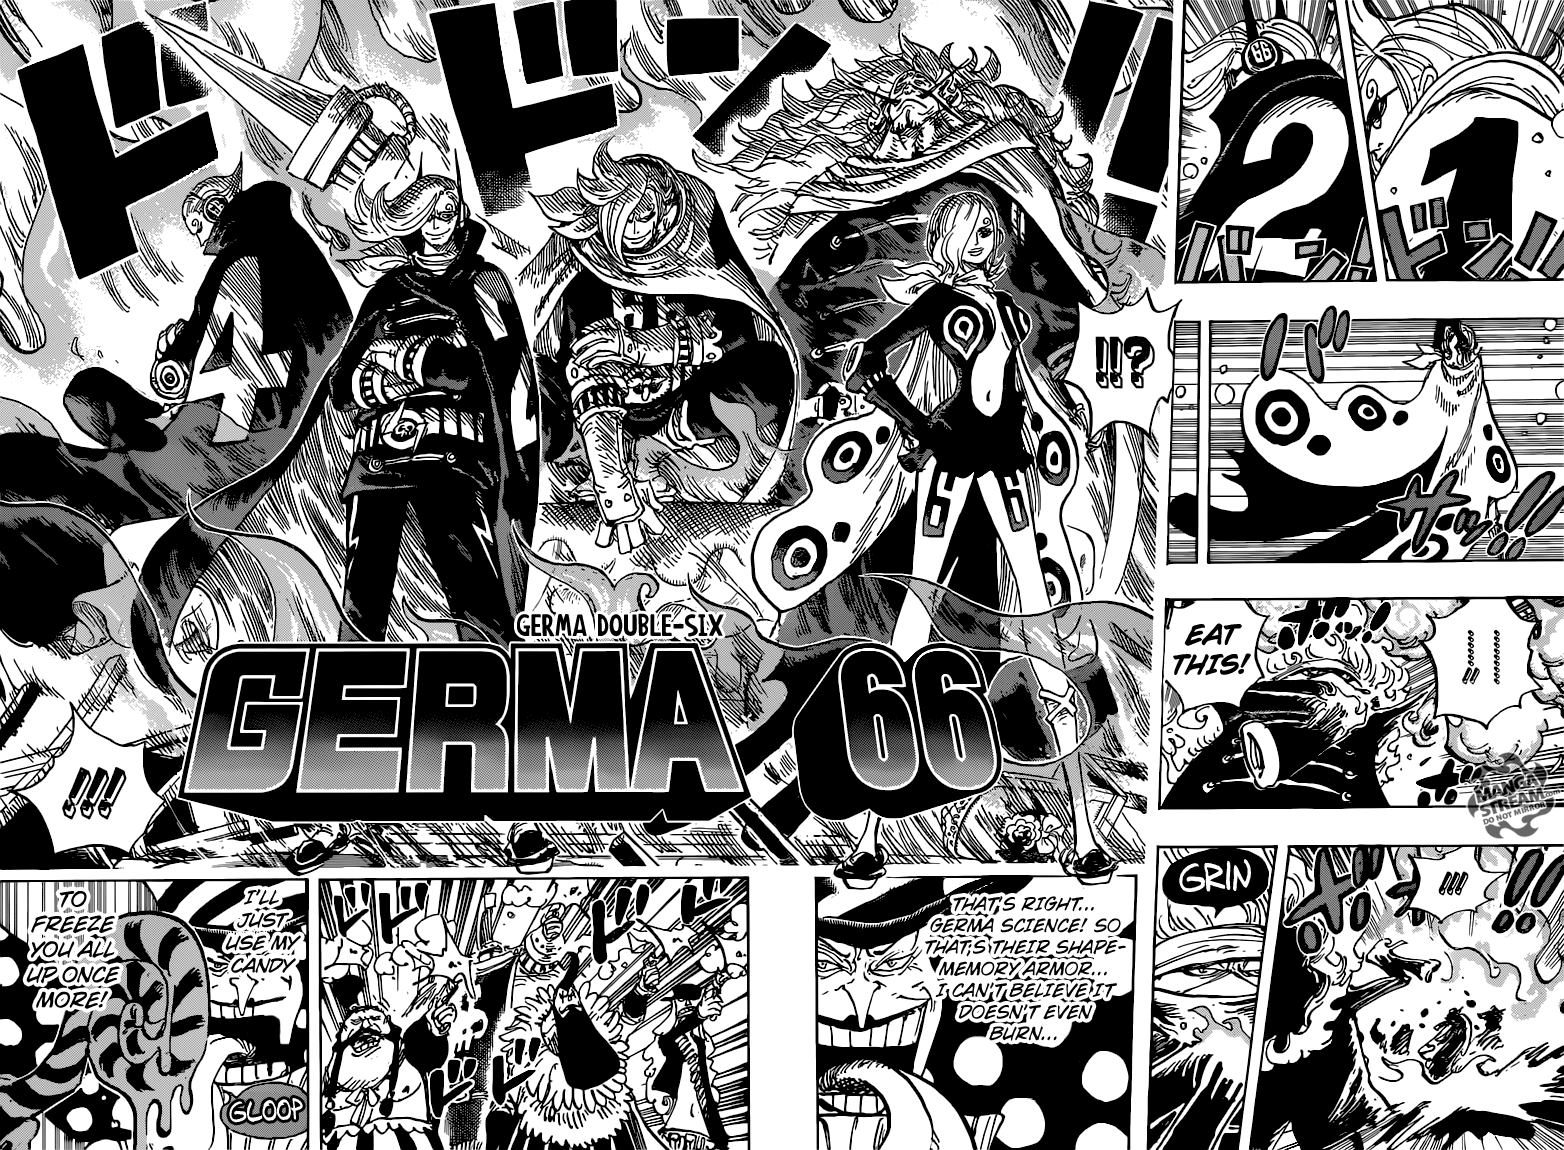 Read manga One Piece One Piece - 869 online in high quality